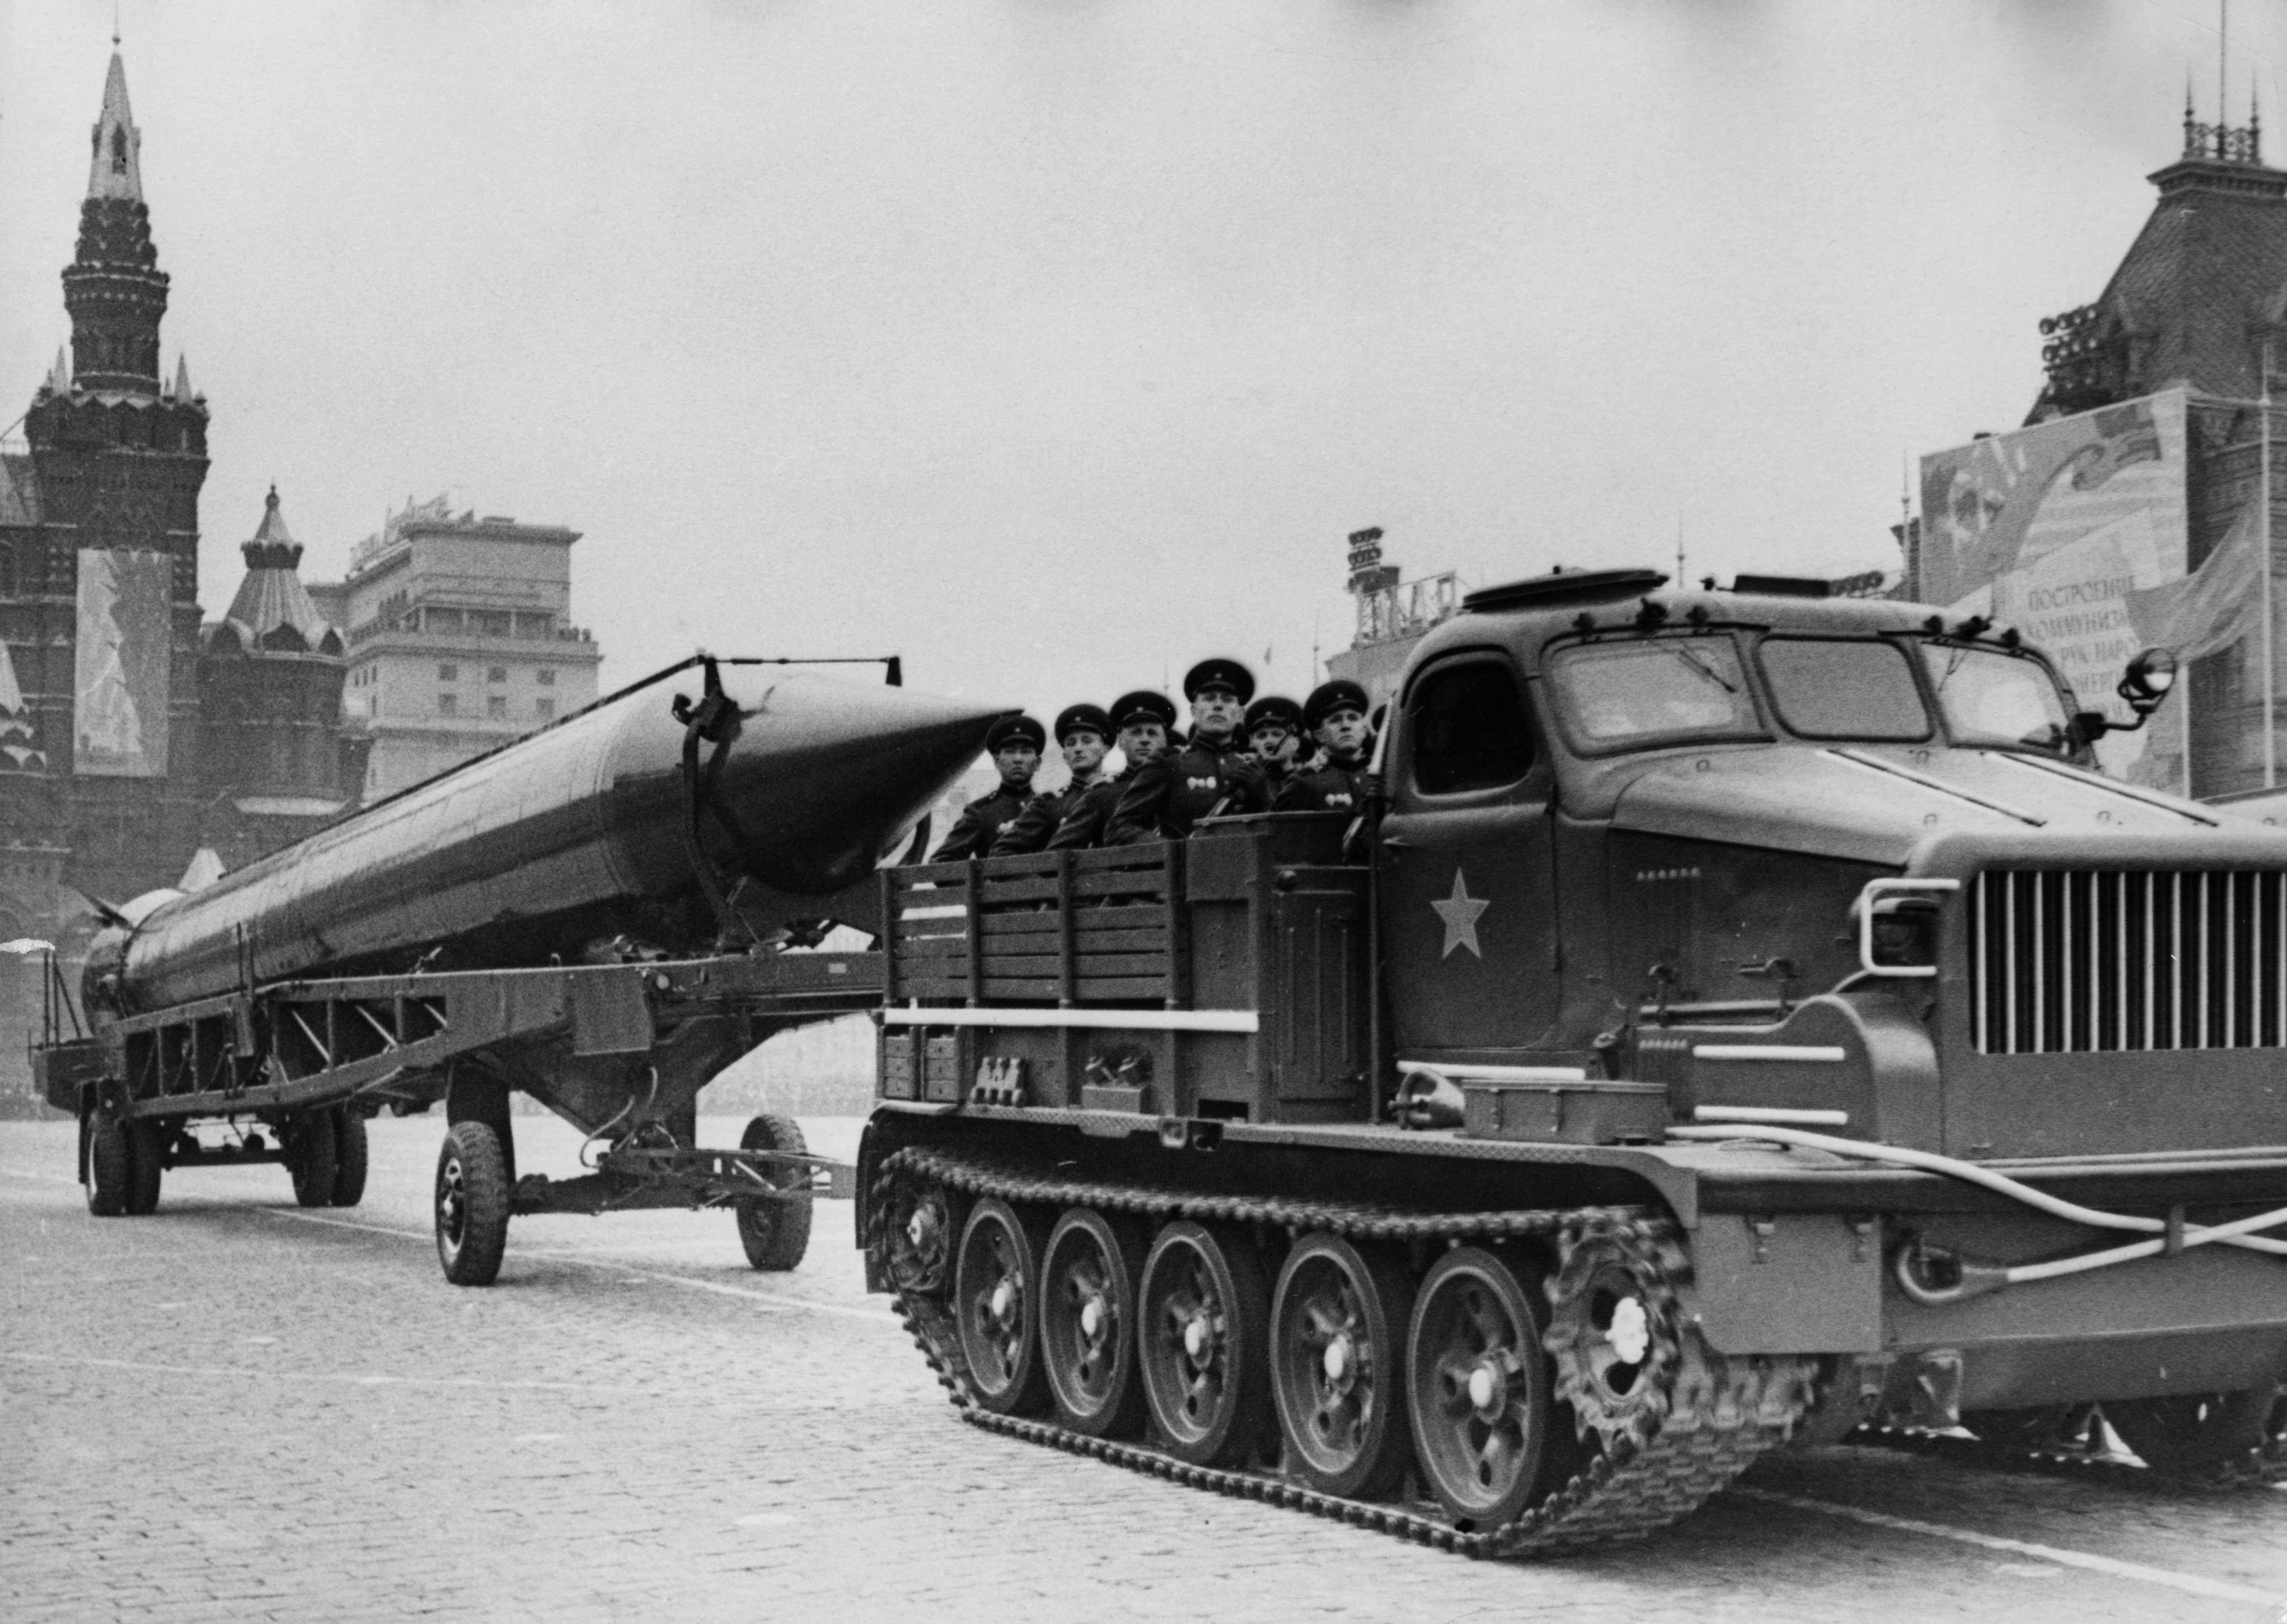 Soviet missiles in Red Square during the May Day Parade of 1962, the year the world came closest to nuclear war. (Photo by Sovfoto/UIG via Getty Images)